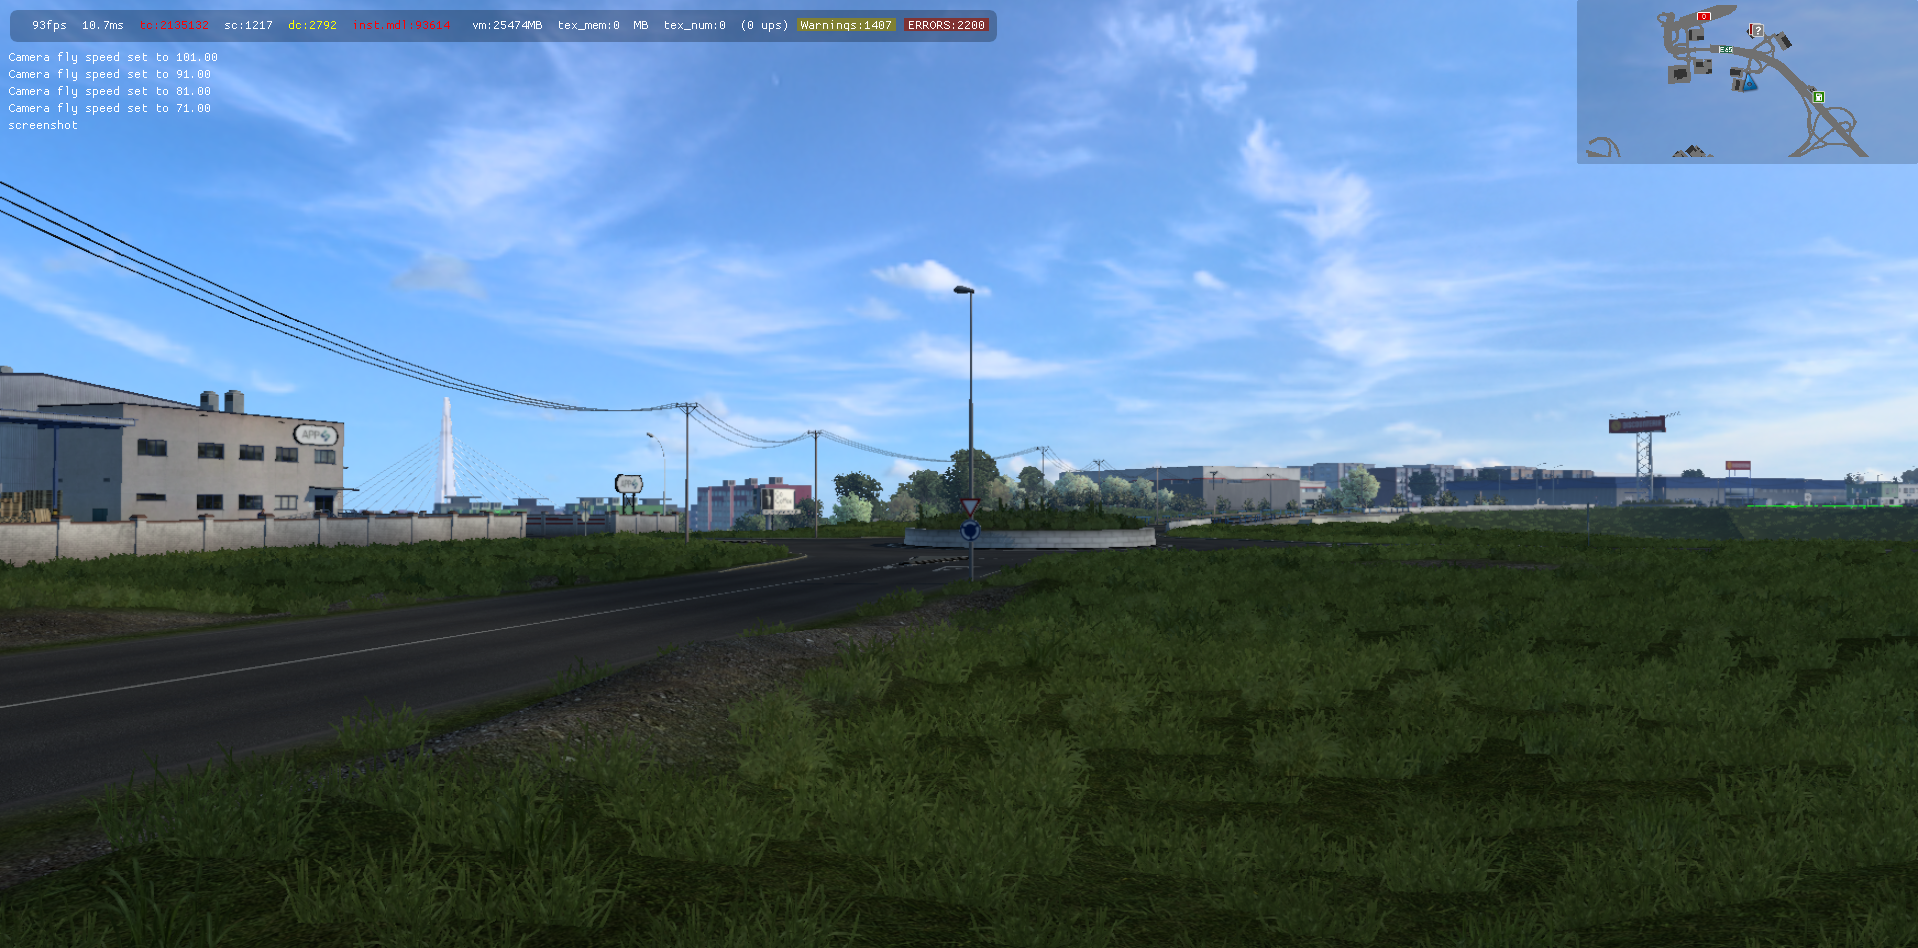 ets2_20210612_162719_00.png